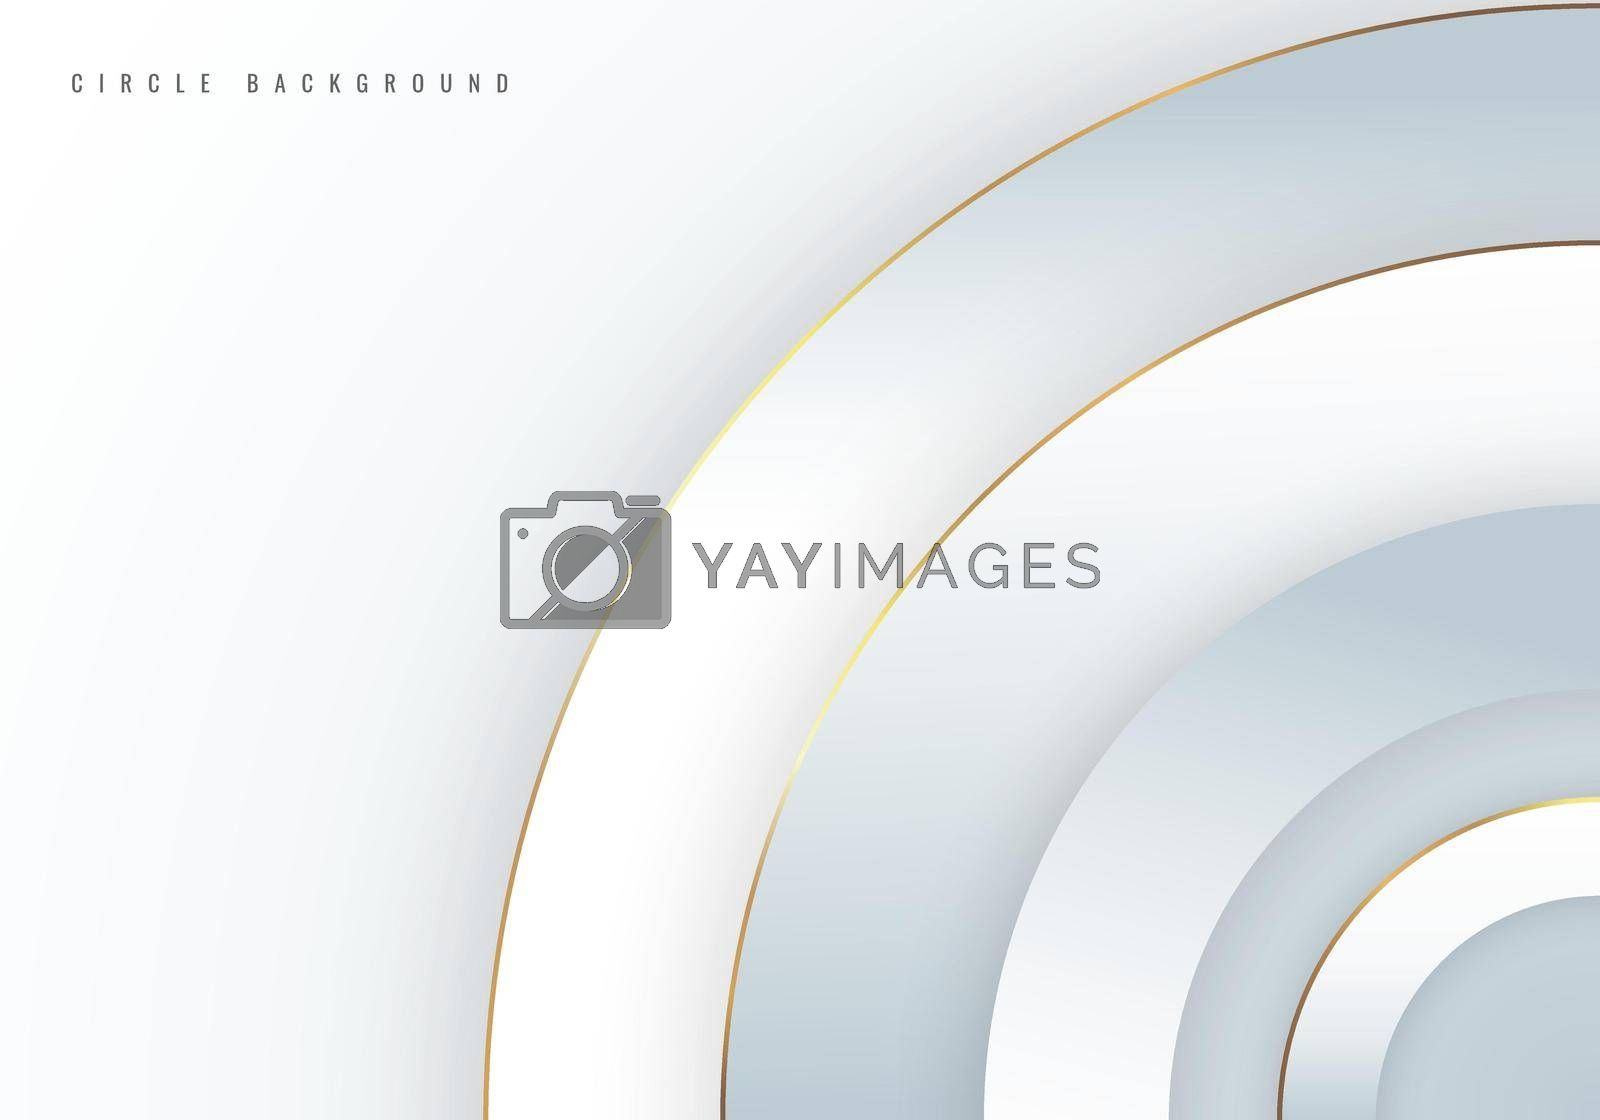 Abstract background 3D white circles overlapping layered with golden border line. Luxury style. Vector illustration